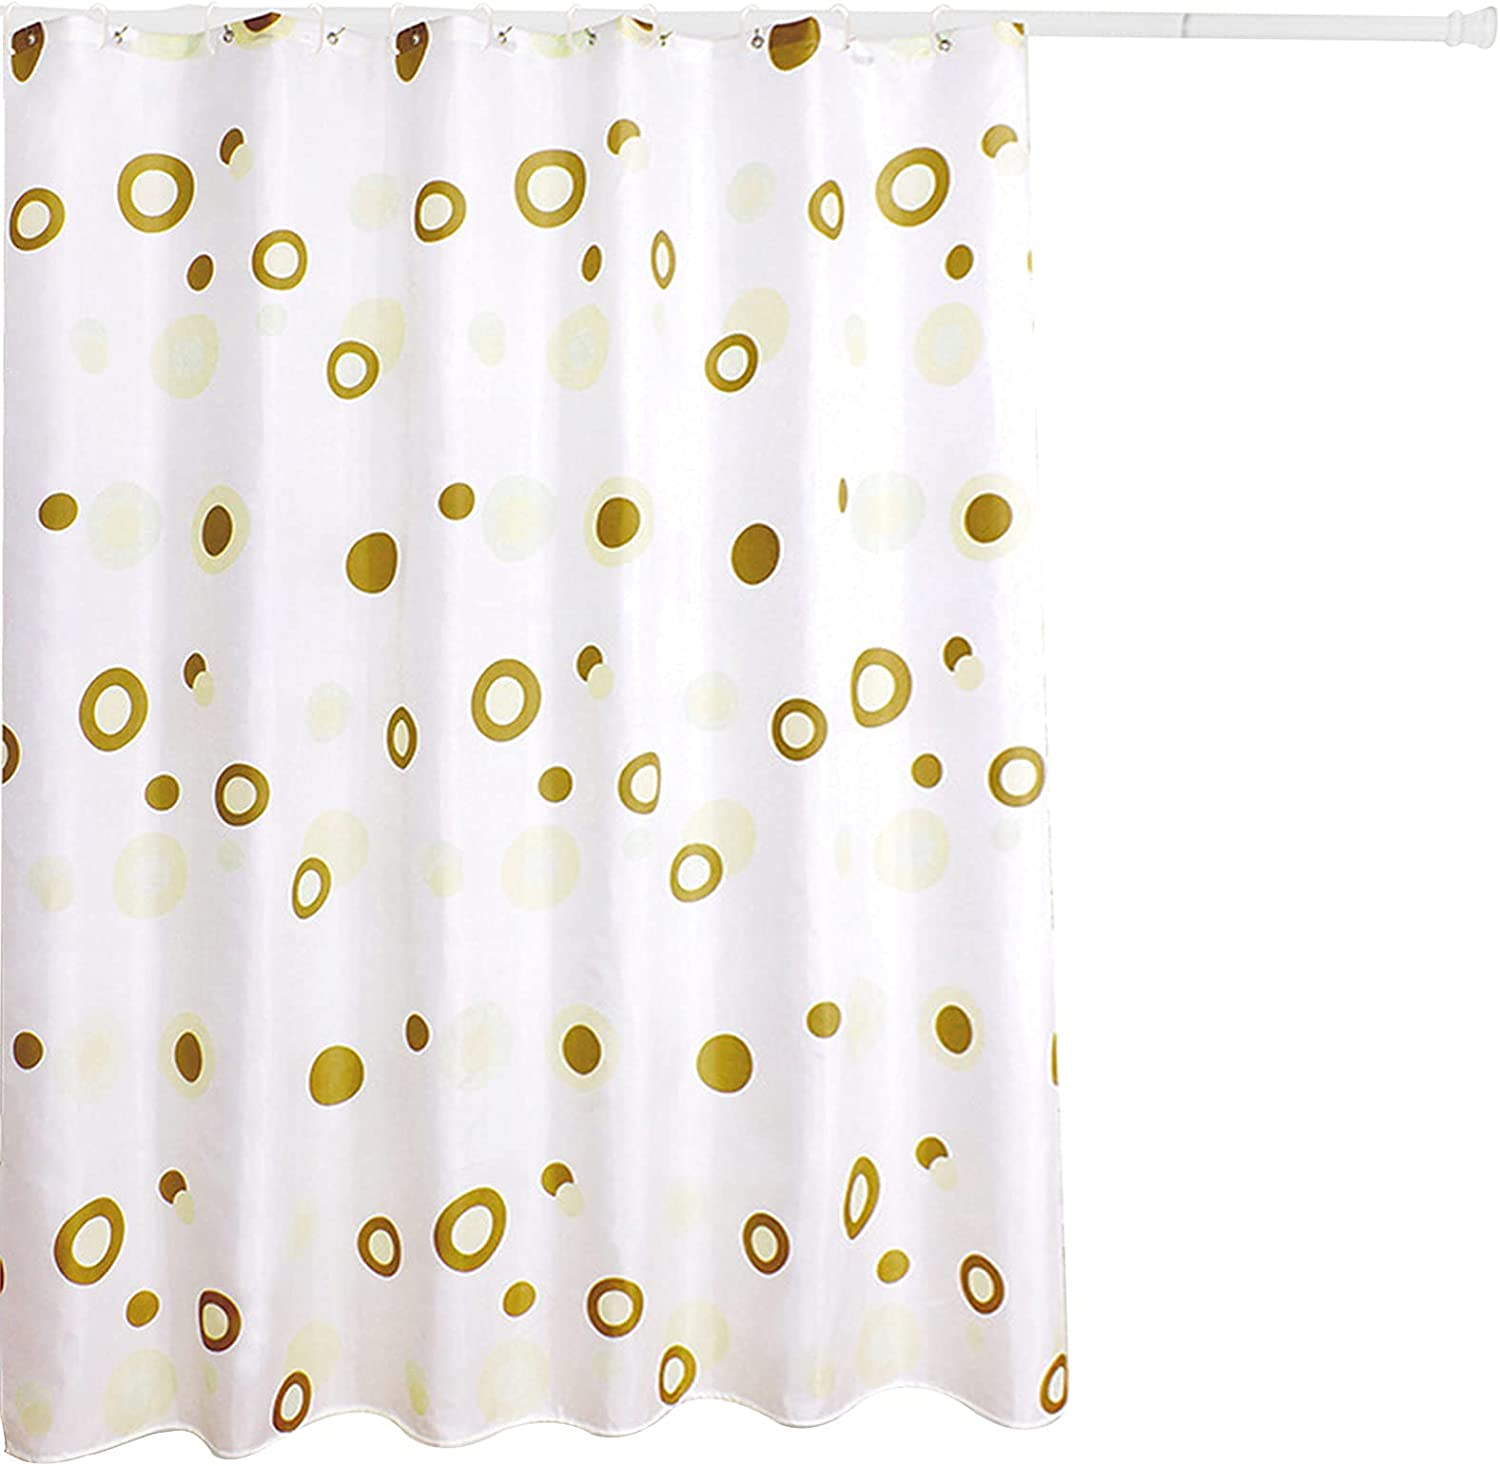 Shower Curtain Bathroom Polyester Topics on TV Quick-Drying Durable Don't miss the campaign